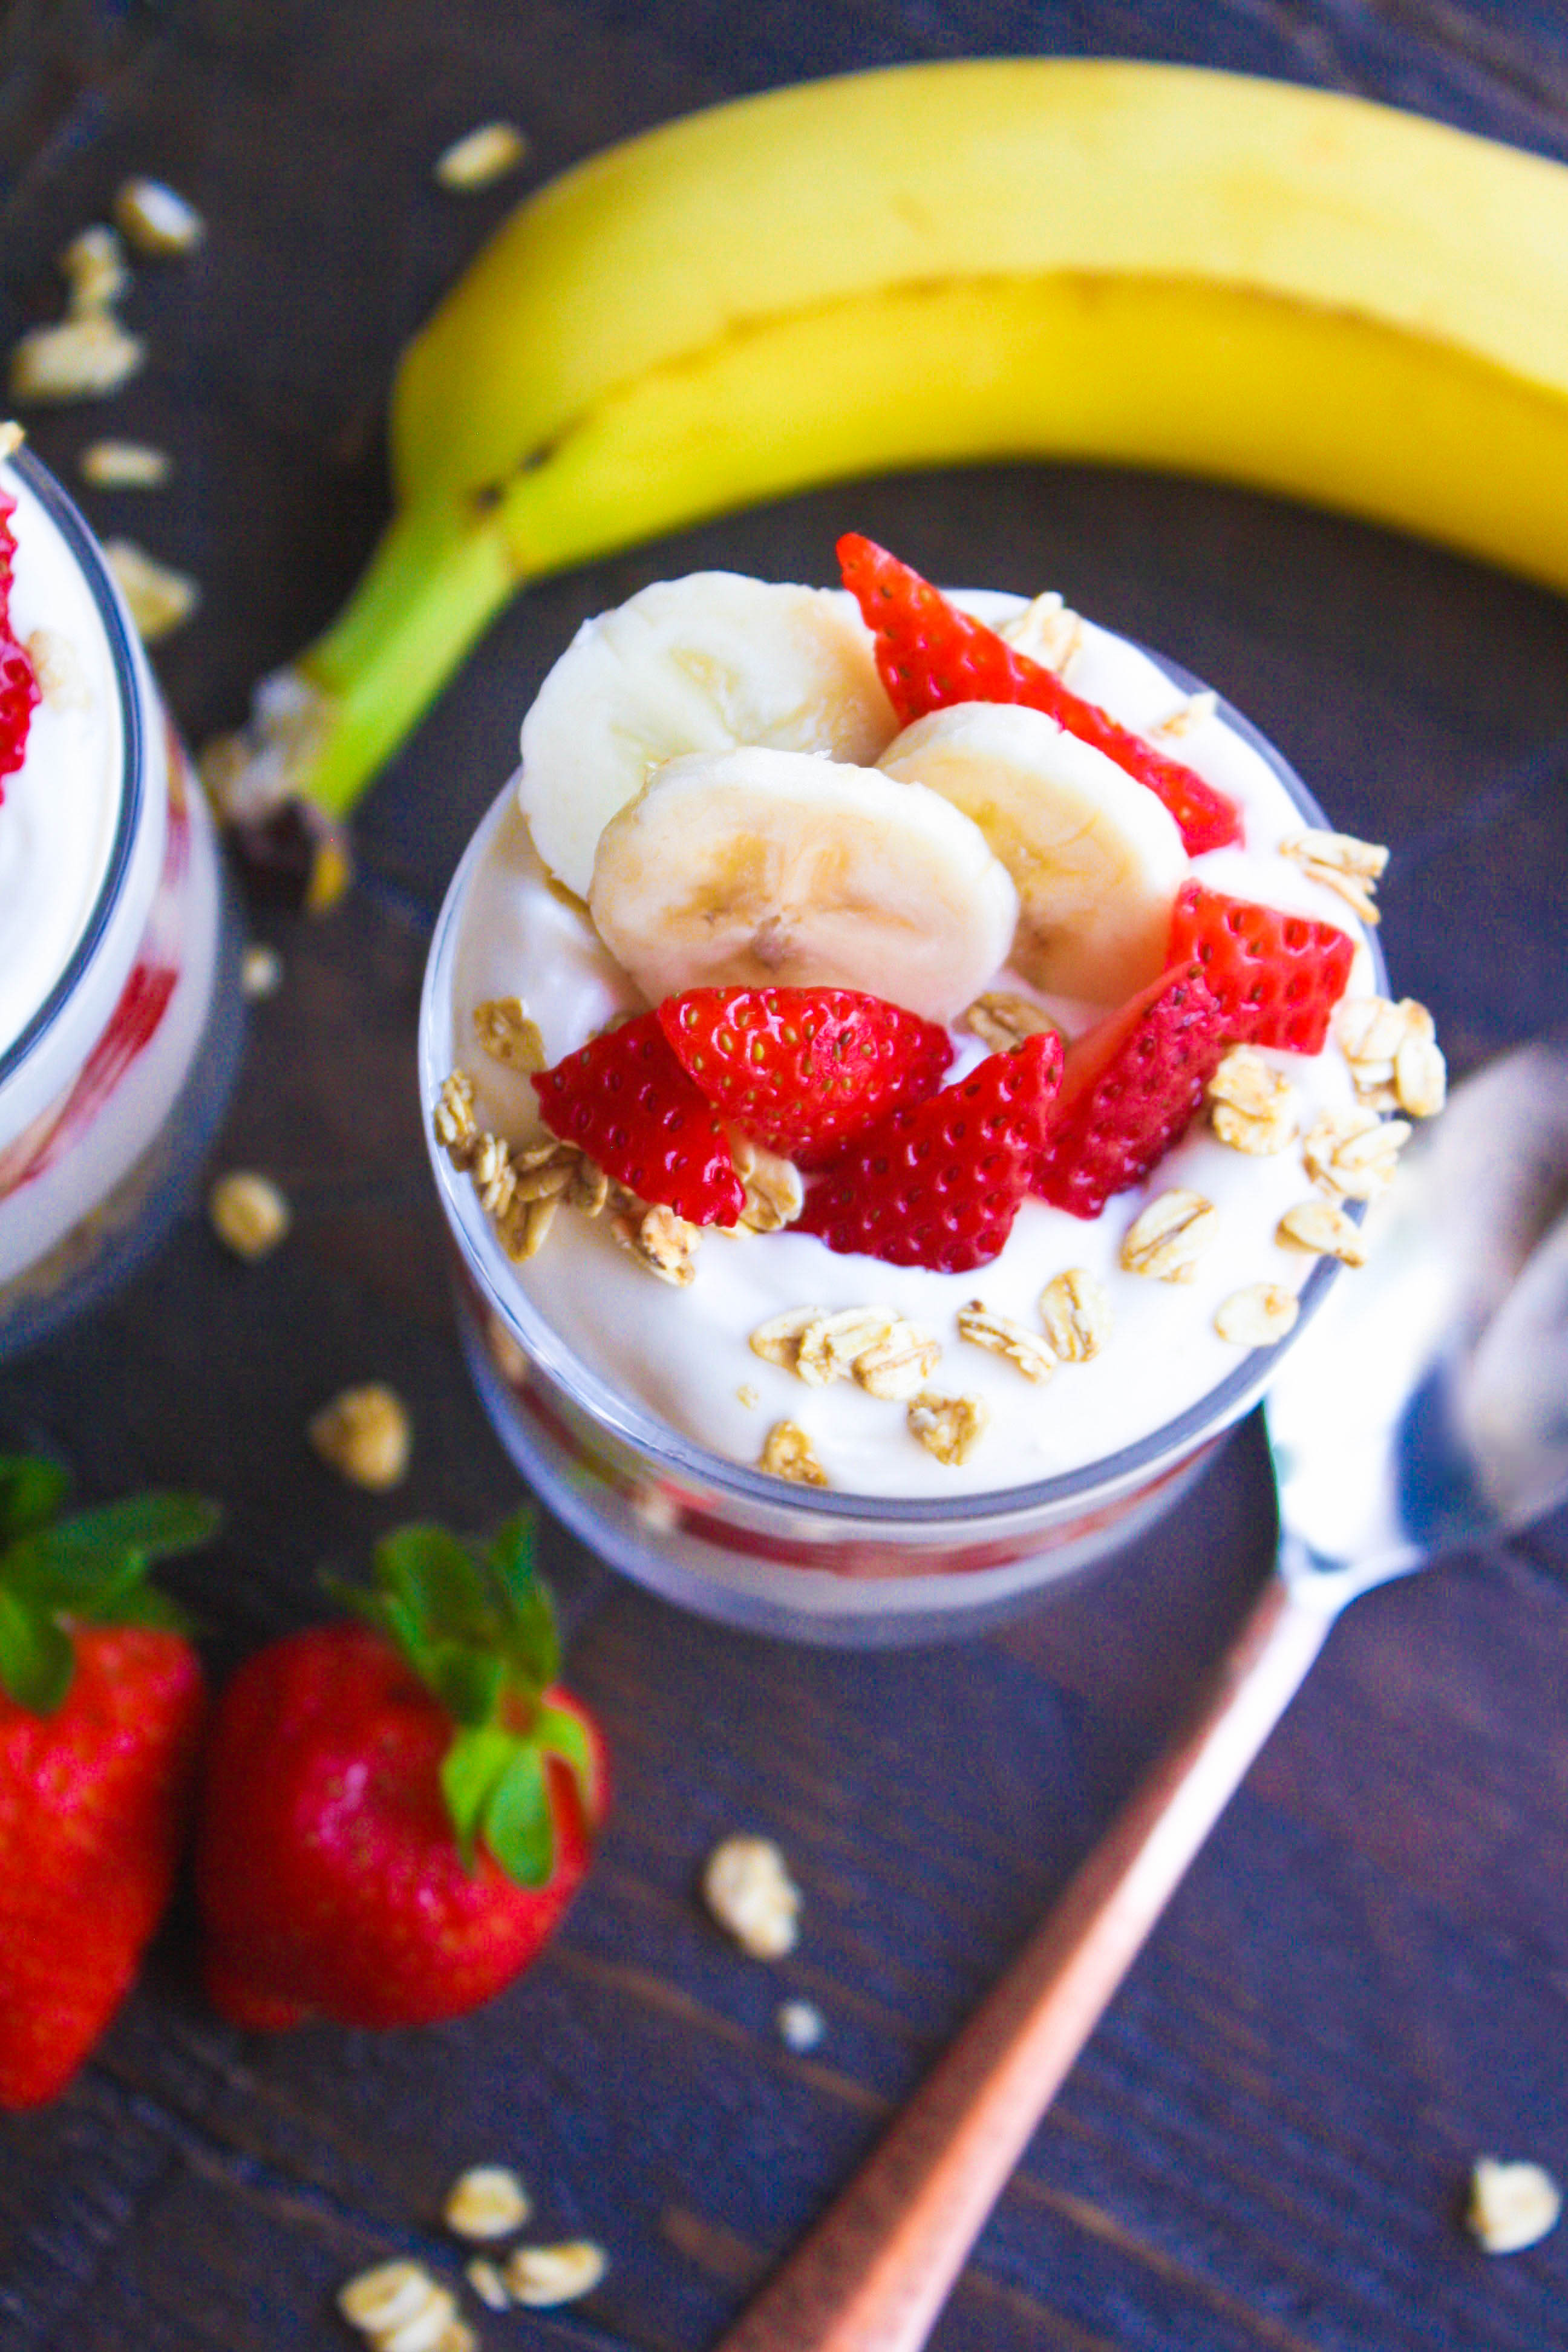 No Bake Strawberry-Banana Cheesecake Parfaits are so easy to make. They're delicious with fresh fruit layered with other goodies. You'll love No Bake Strawberry-Banana Cheesecake Parfaits!